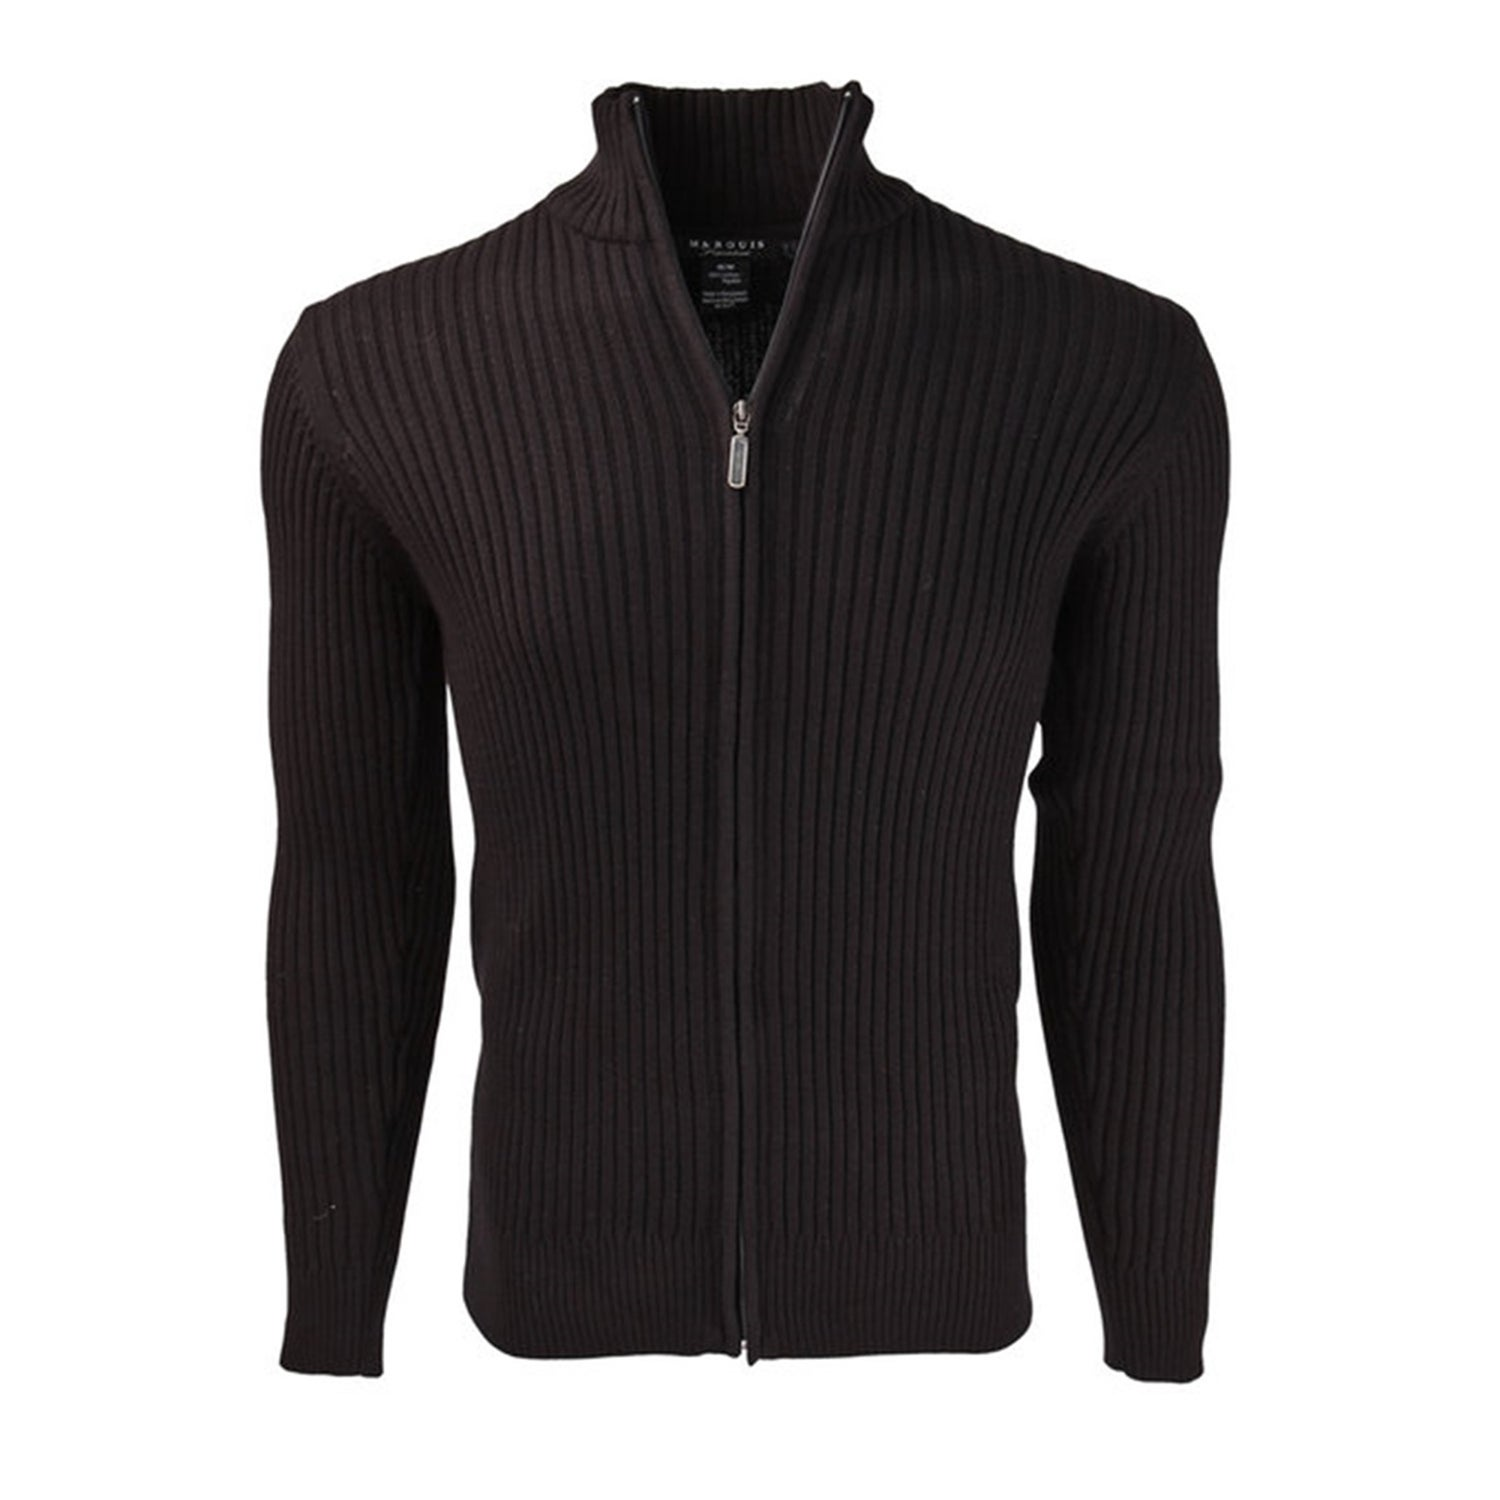 64936cdeb65 Men's Sweaters | Find Great Men's Clothing Deals Shopping at Overstock